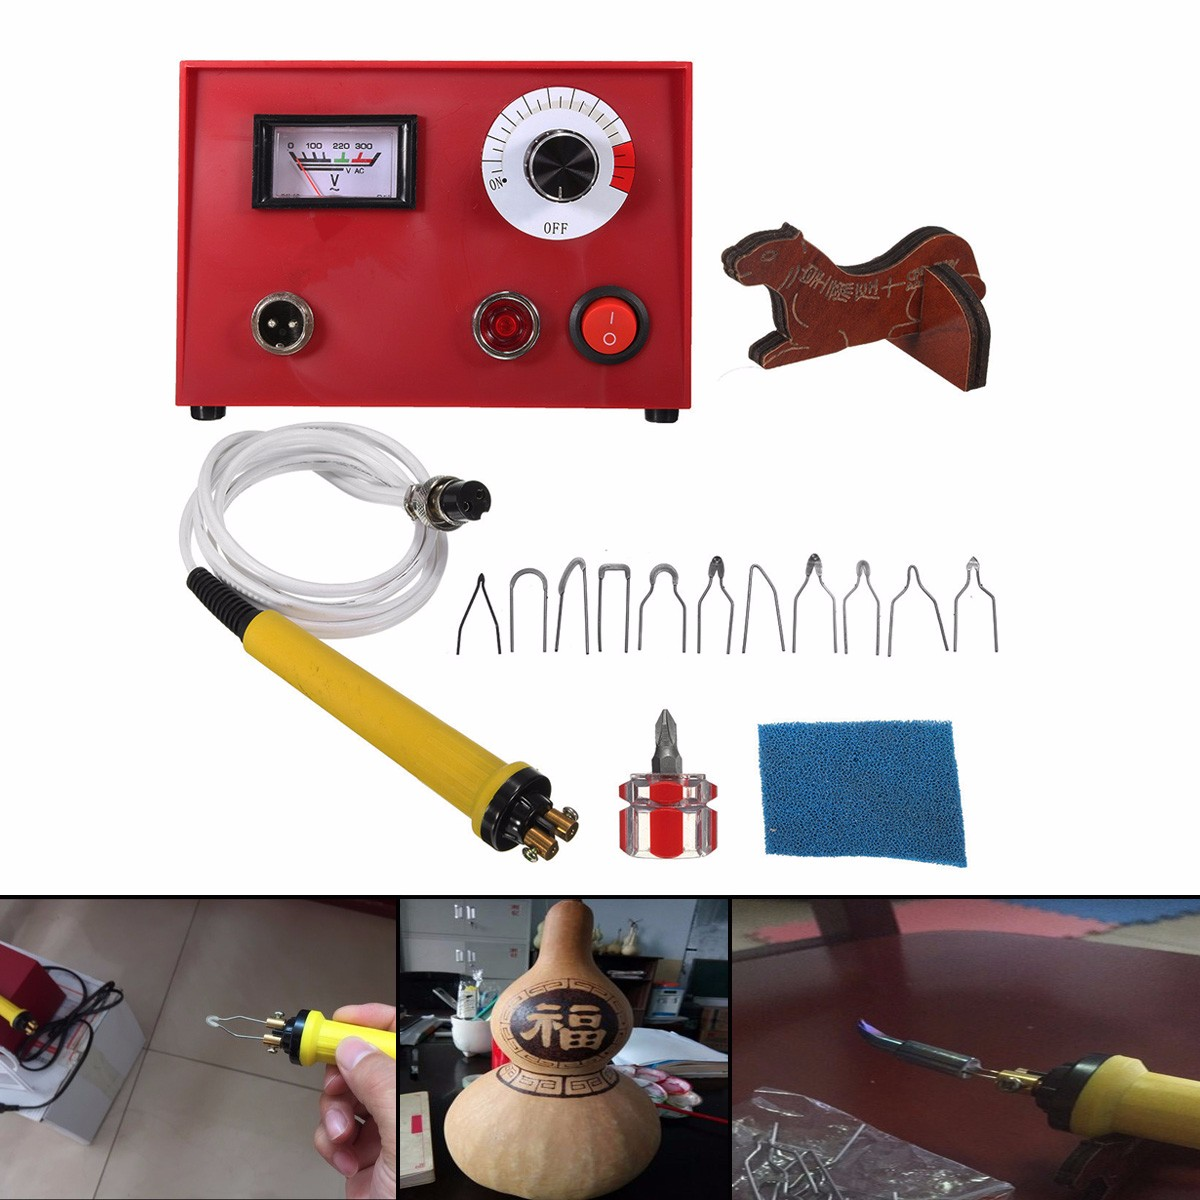 50W 220V AC DIY Craft Multifunction Pyrography Machine with 1Pc Pyrography Pen Copper Heating Solder Tip Gourd Wooden Tool Set50W 220V AC DIY Craft Multifunction Pyrography Machine with 1Pc Pyrography Pen Copper Heating Solder Tip Gourd Wooden Tool Set